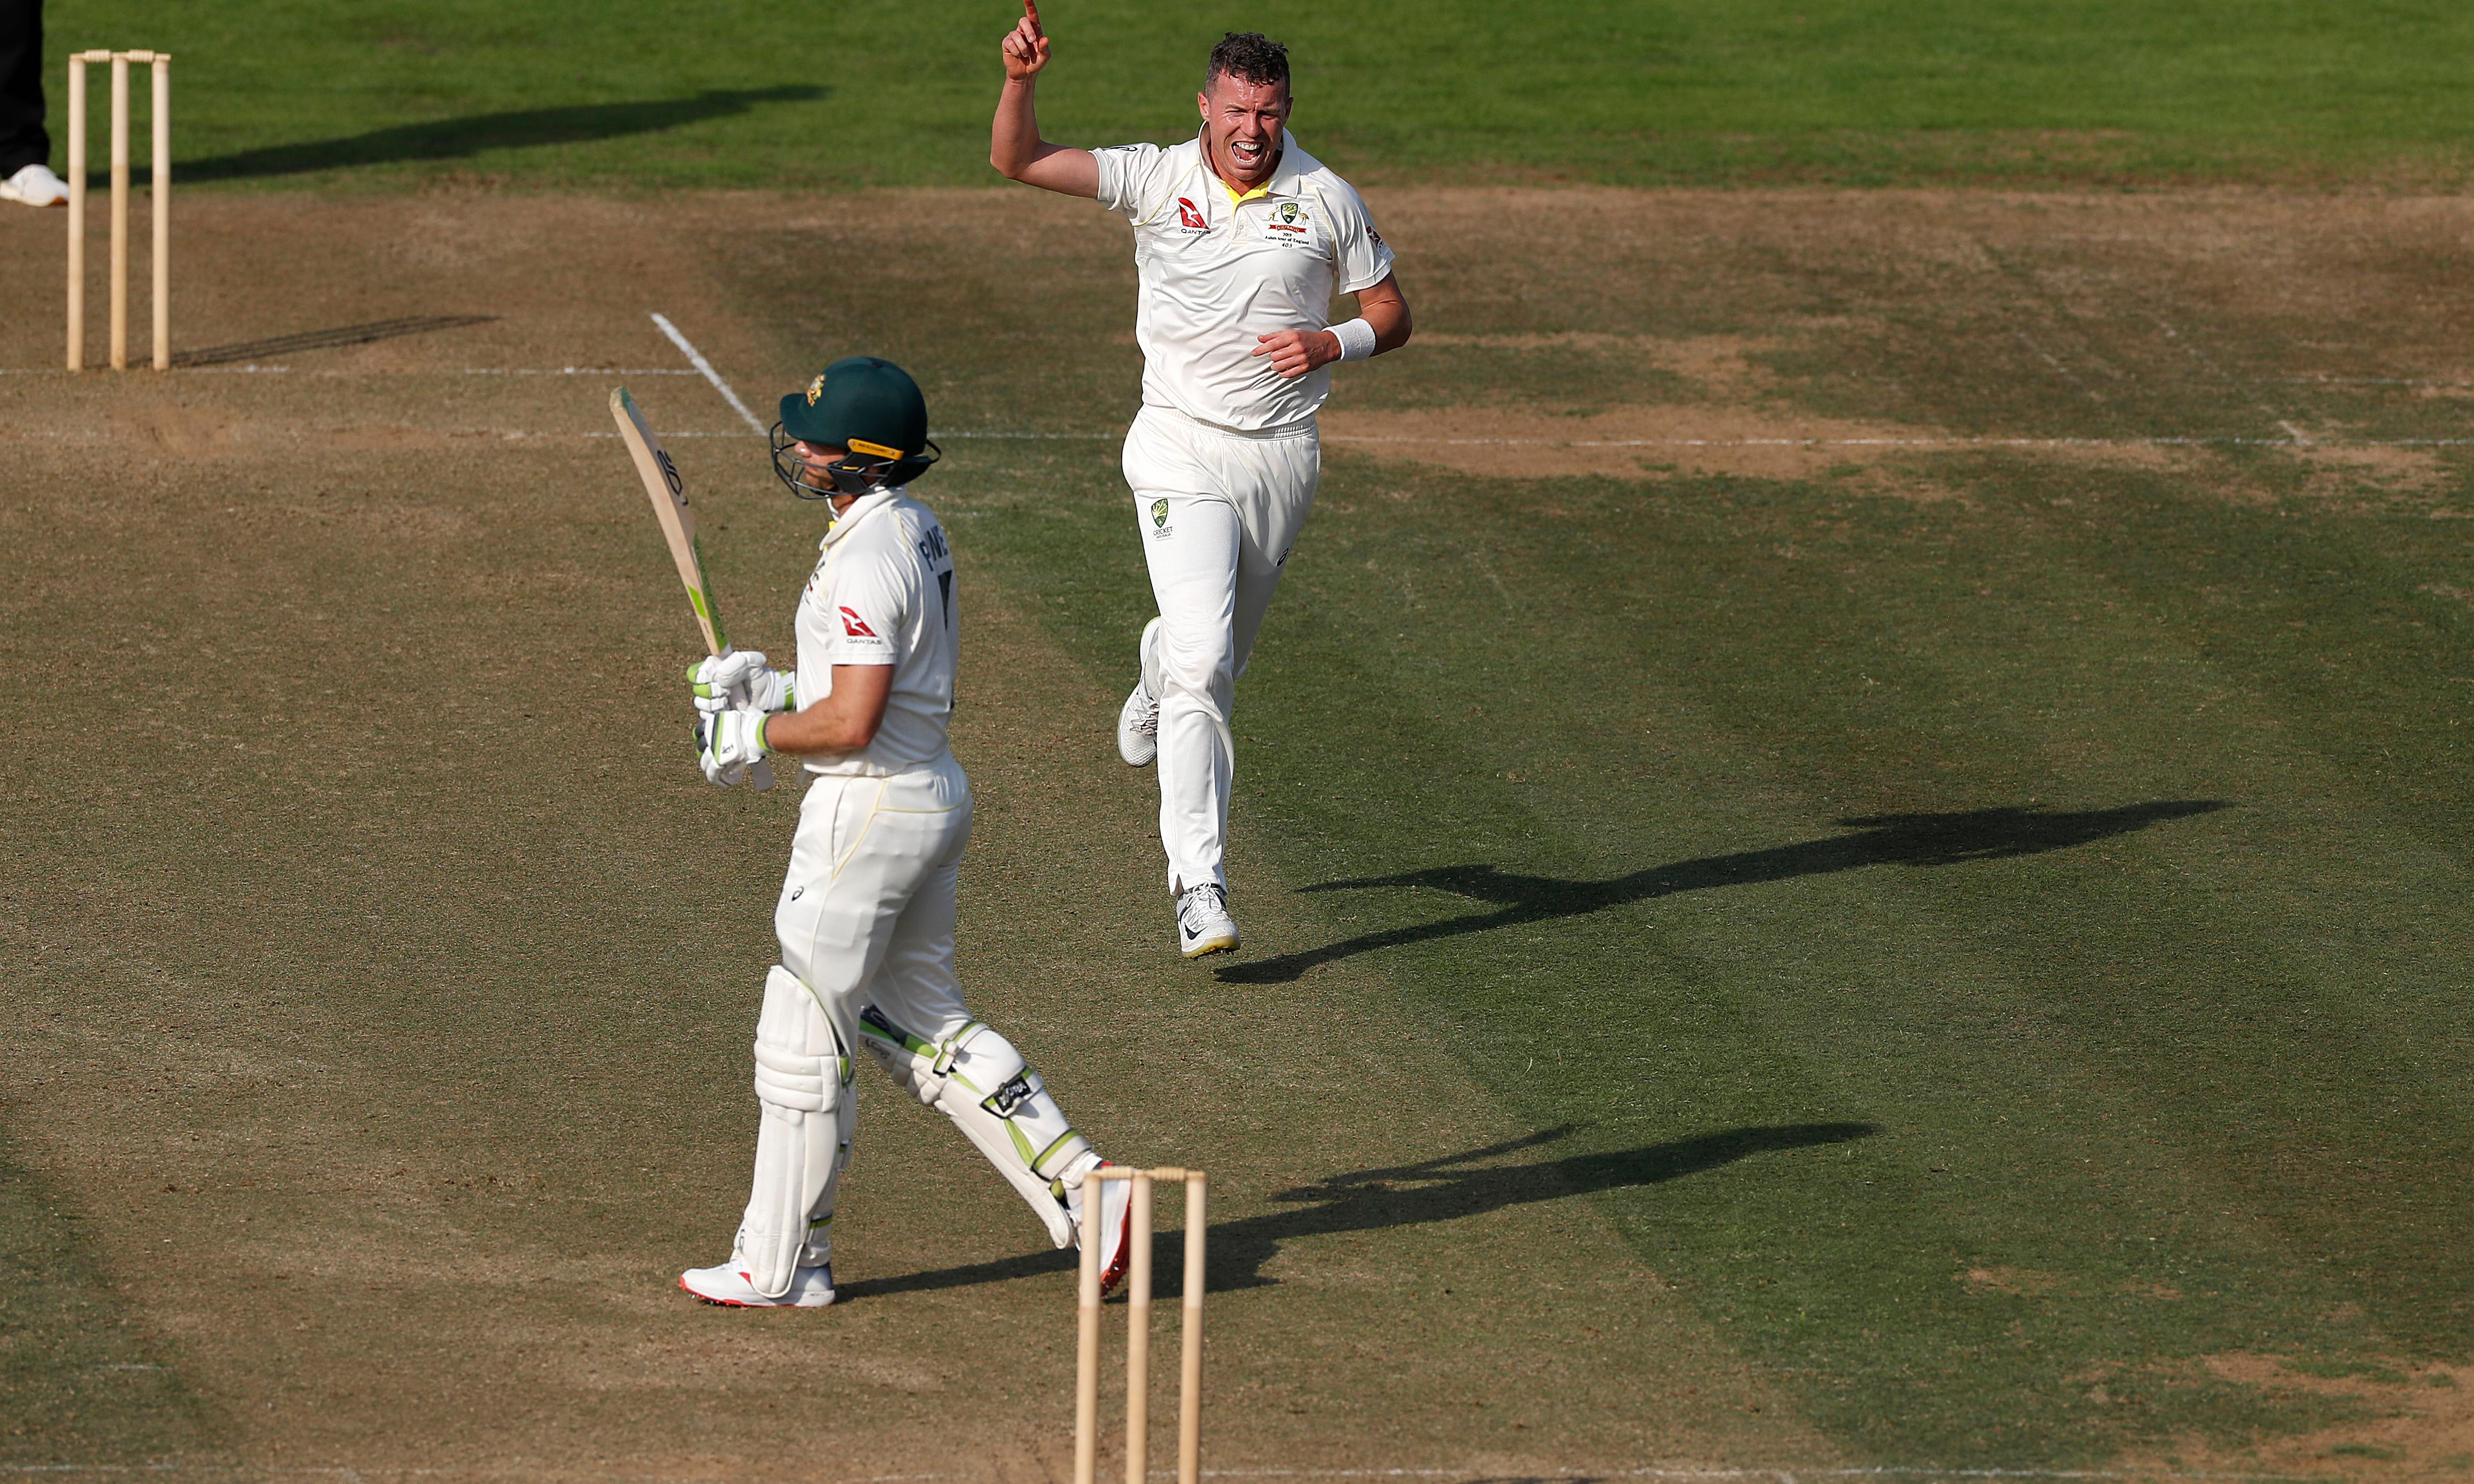 Ashes arms race leads to Australians playing warm-up against each other